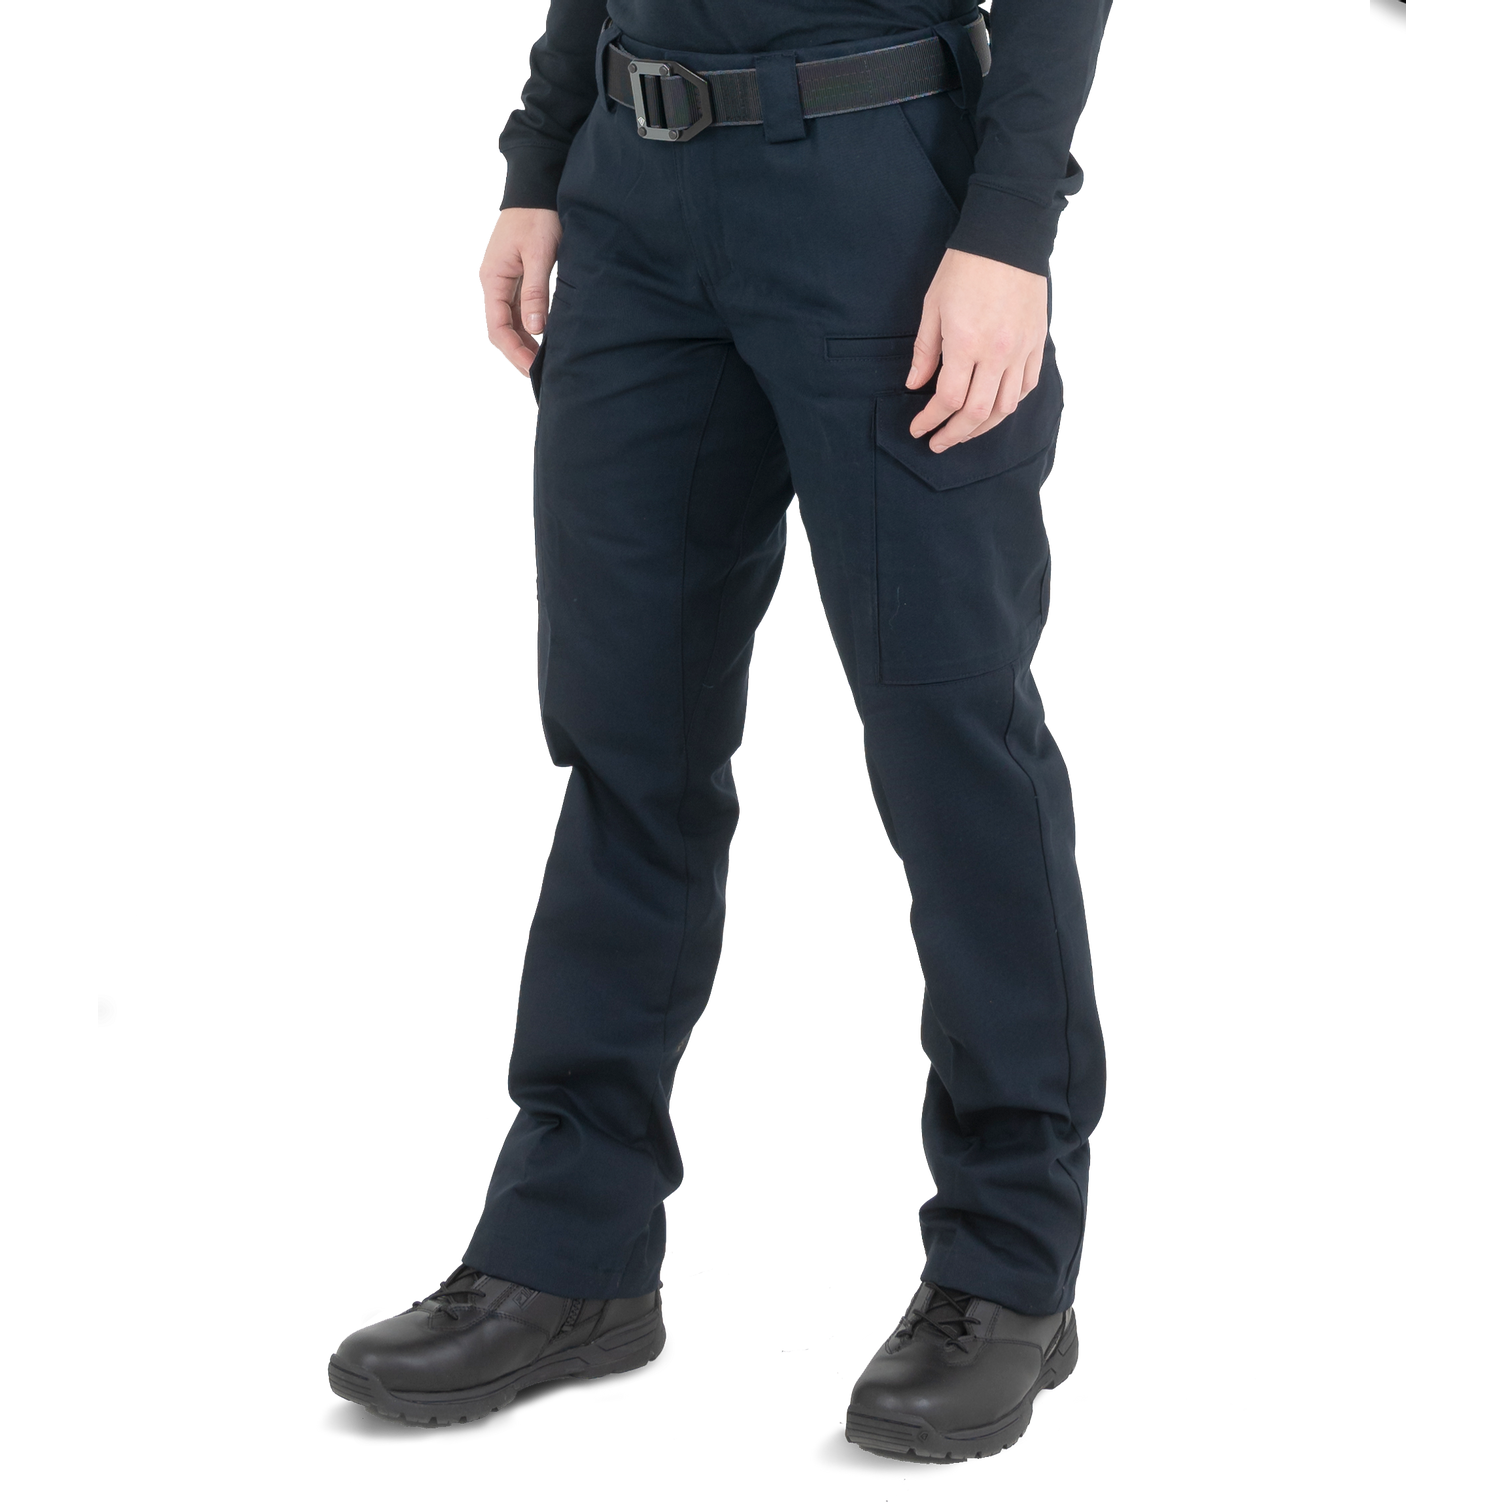 First Tactical Women's Cotton Cargo Station Pants